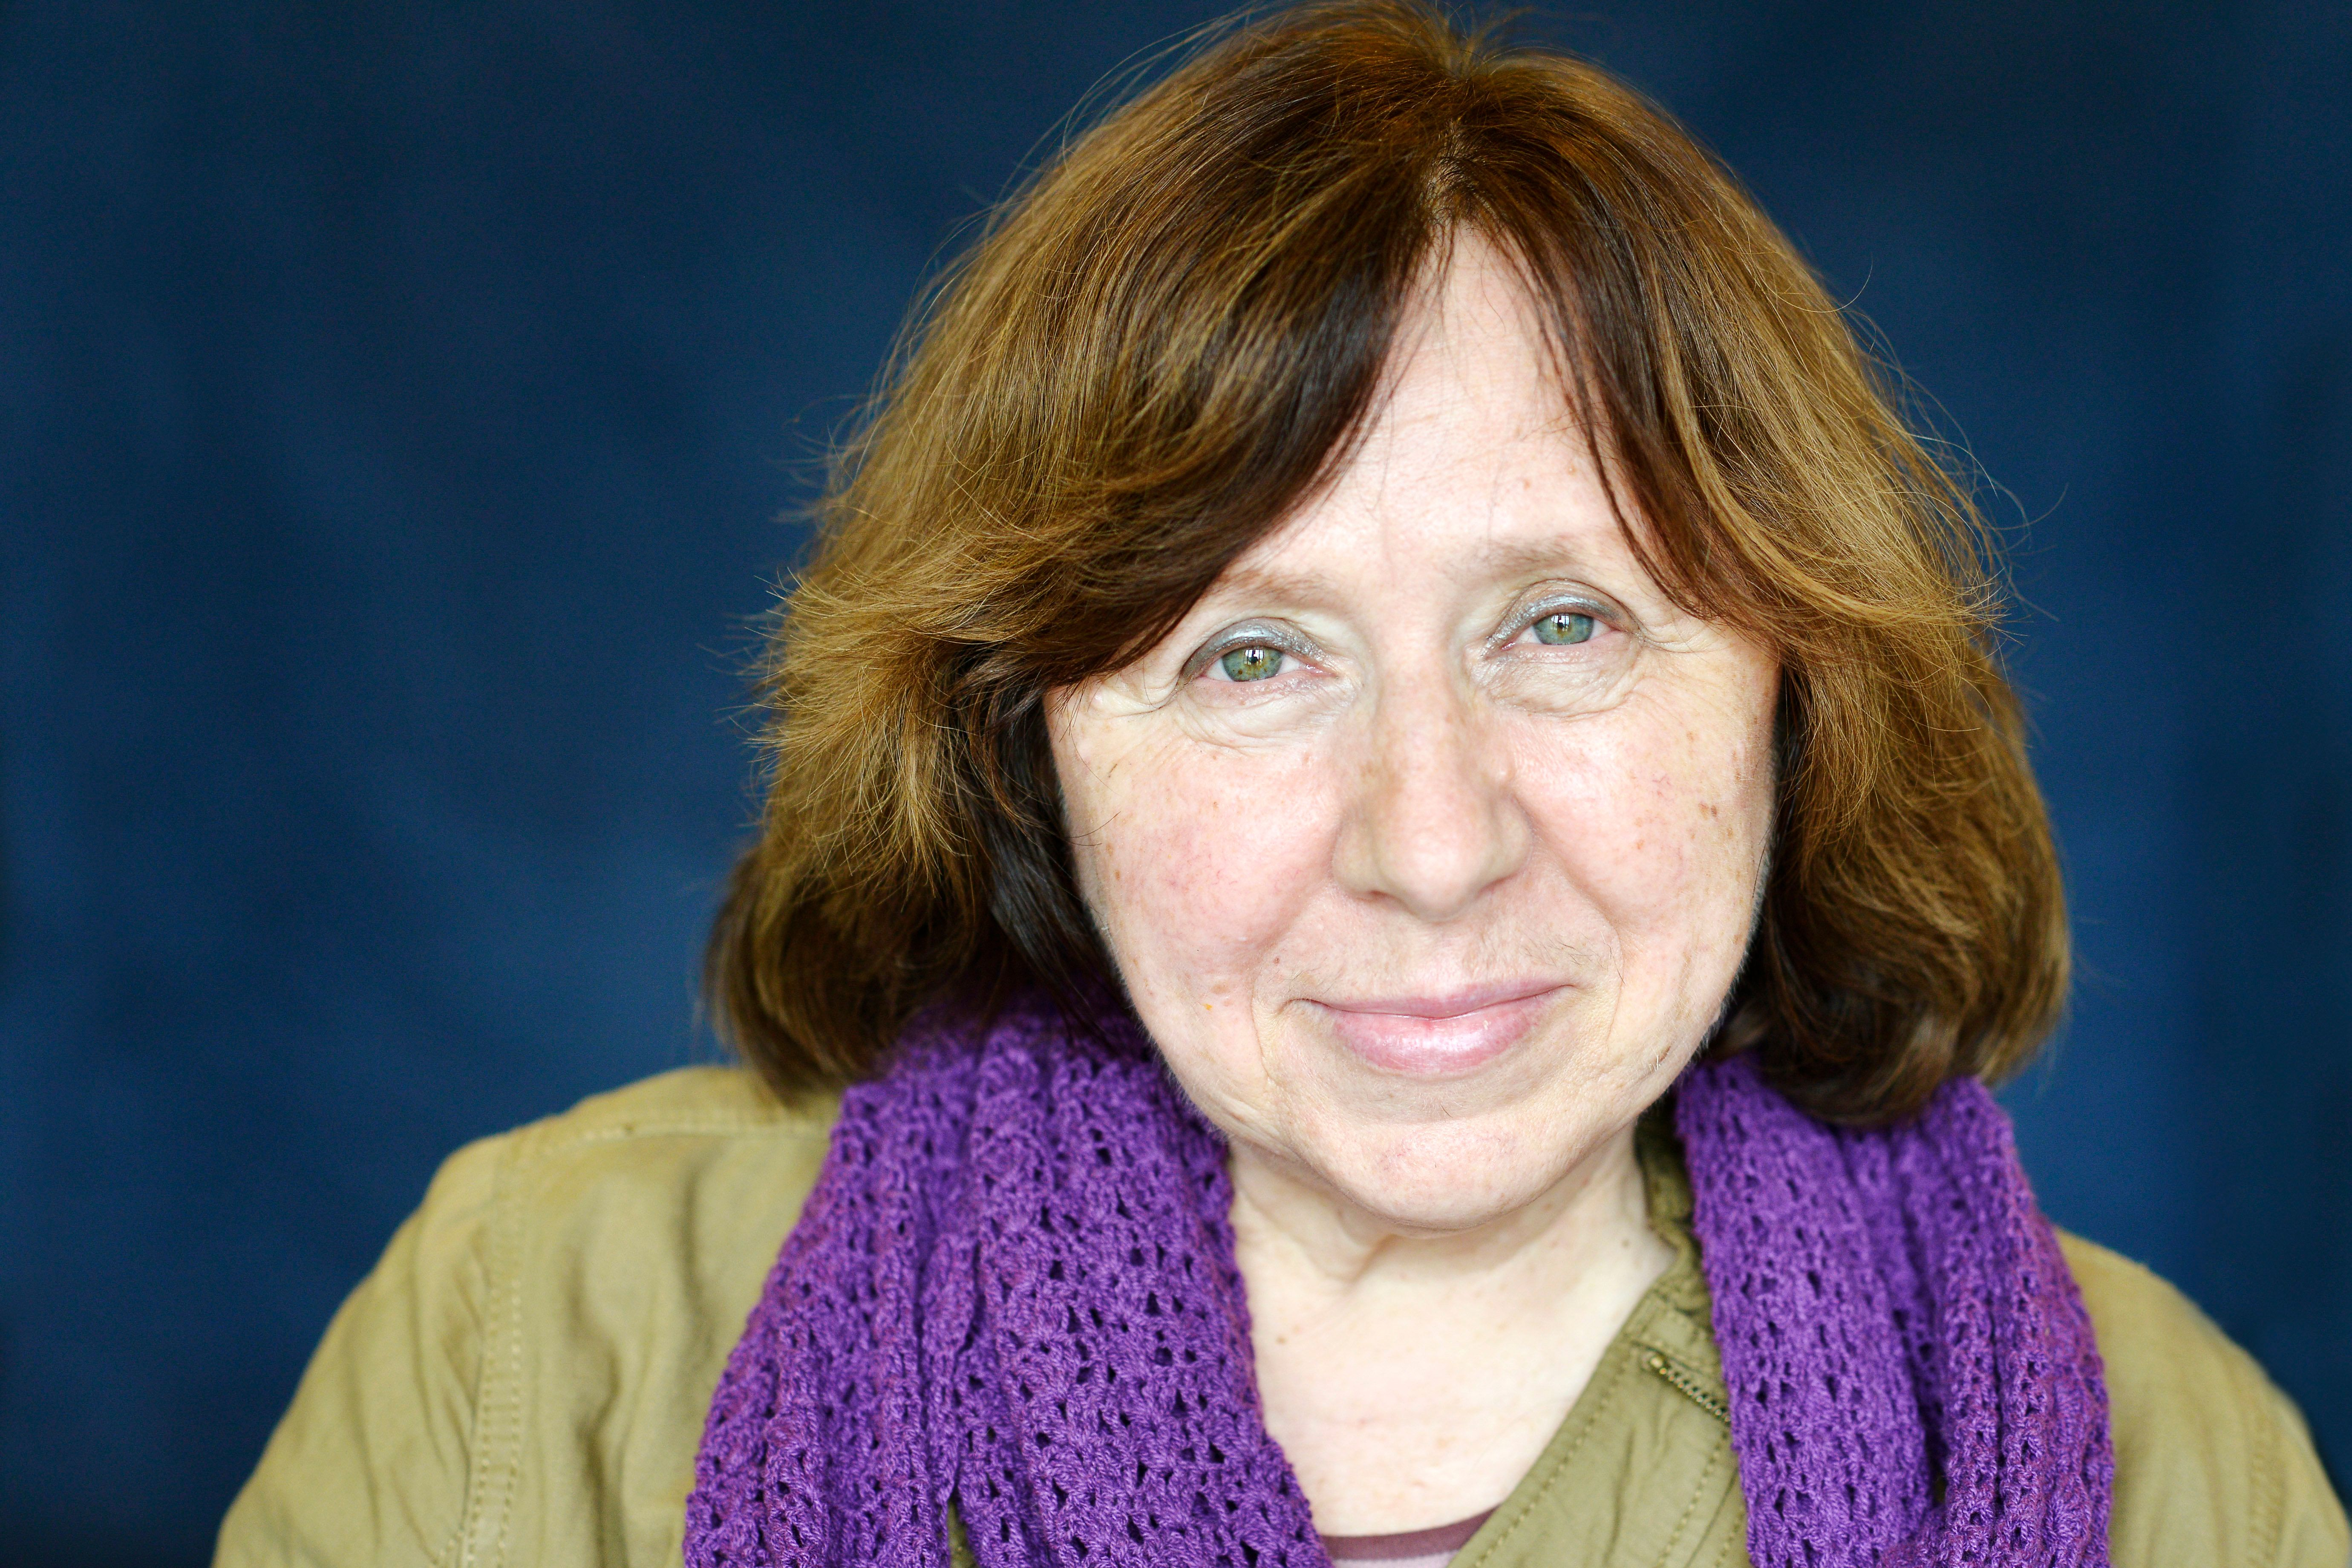 LYON, FRANCE - MAY 22:  Russian writer Svetlana Alexievich poses during a portrait session held on May 22, 2014 in Lyon, France. (Photo by Ulf Andersen/Getty Images).